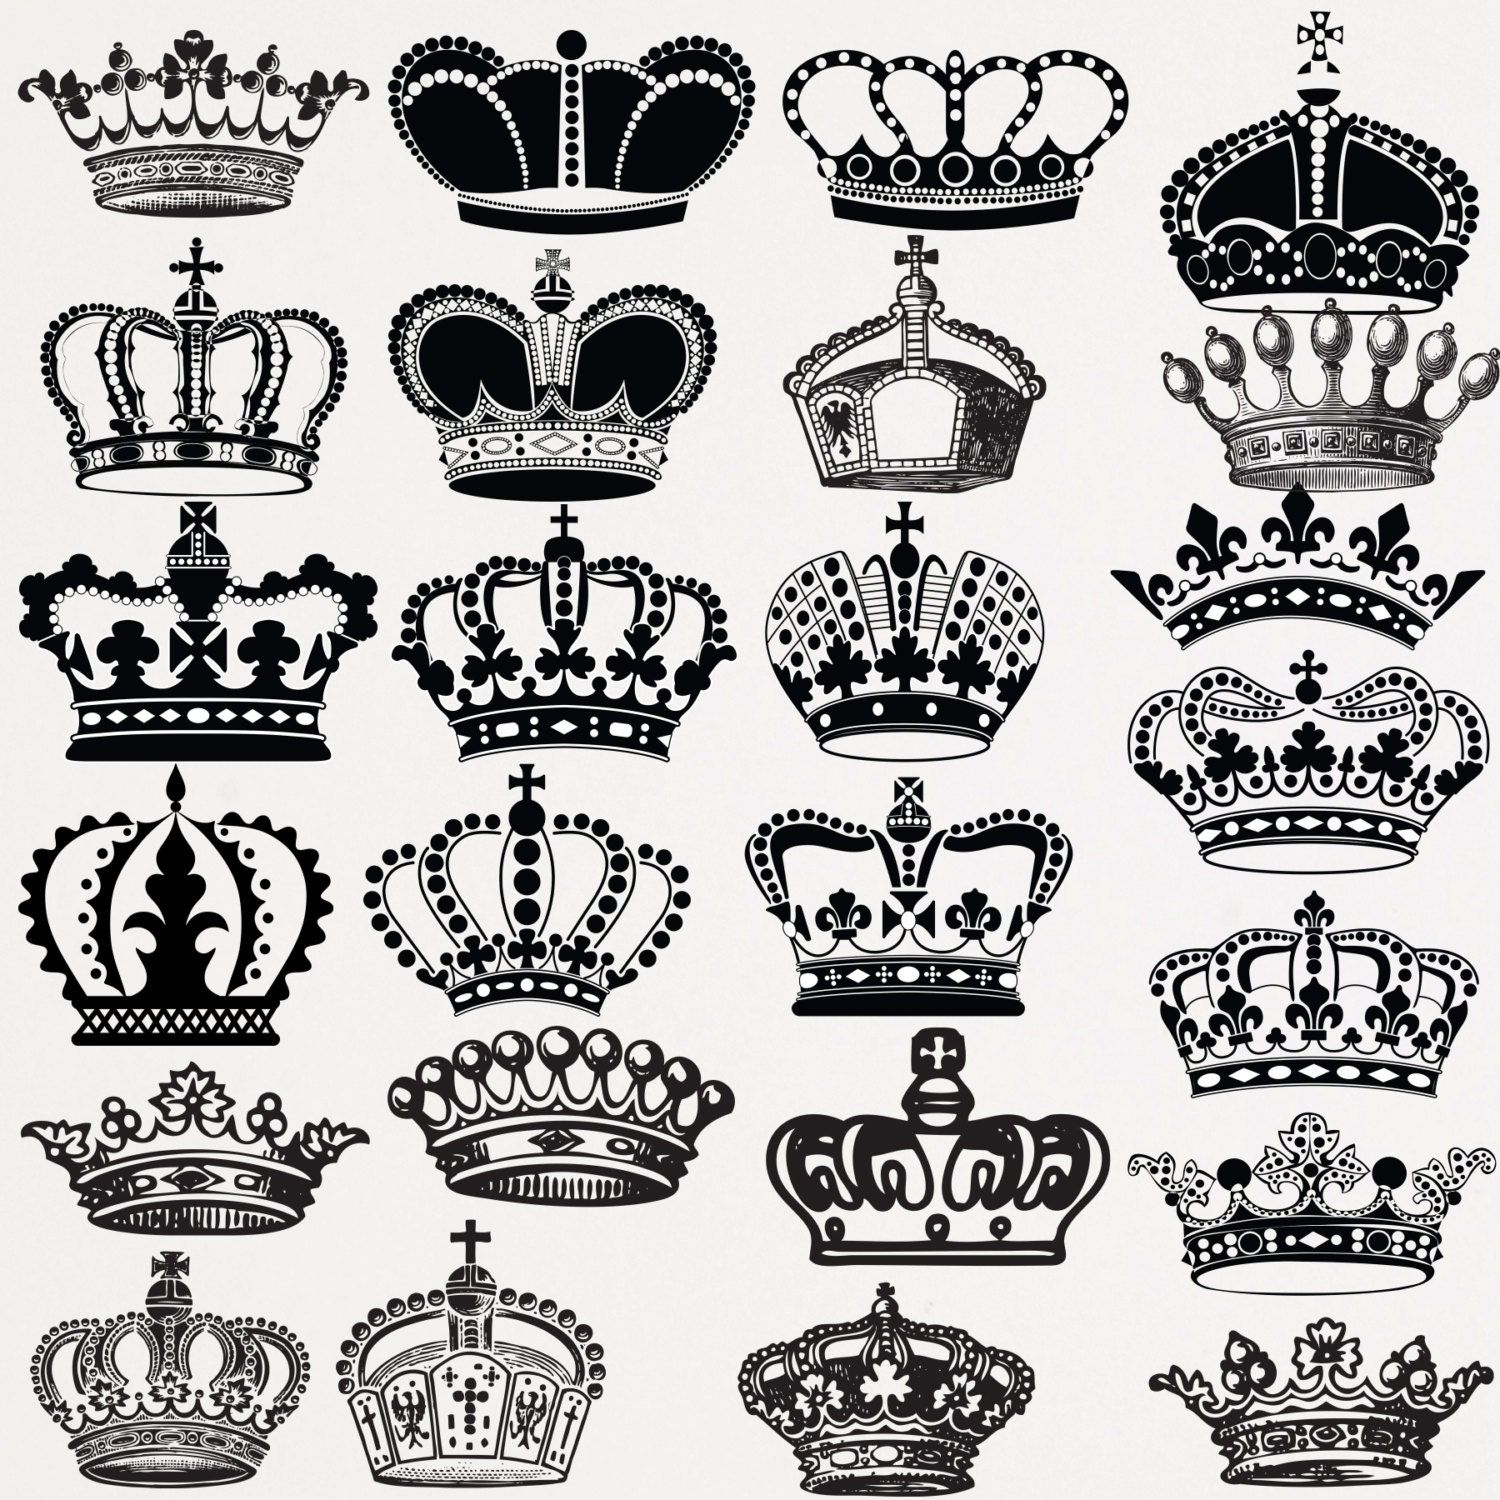 Queen crown black and white